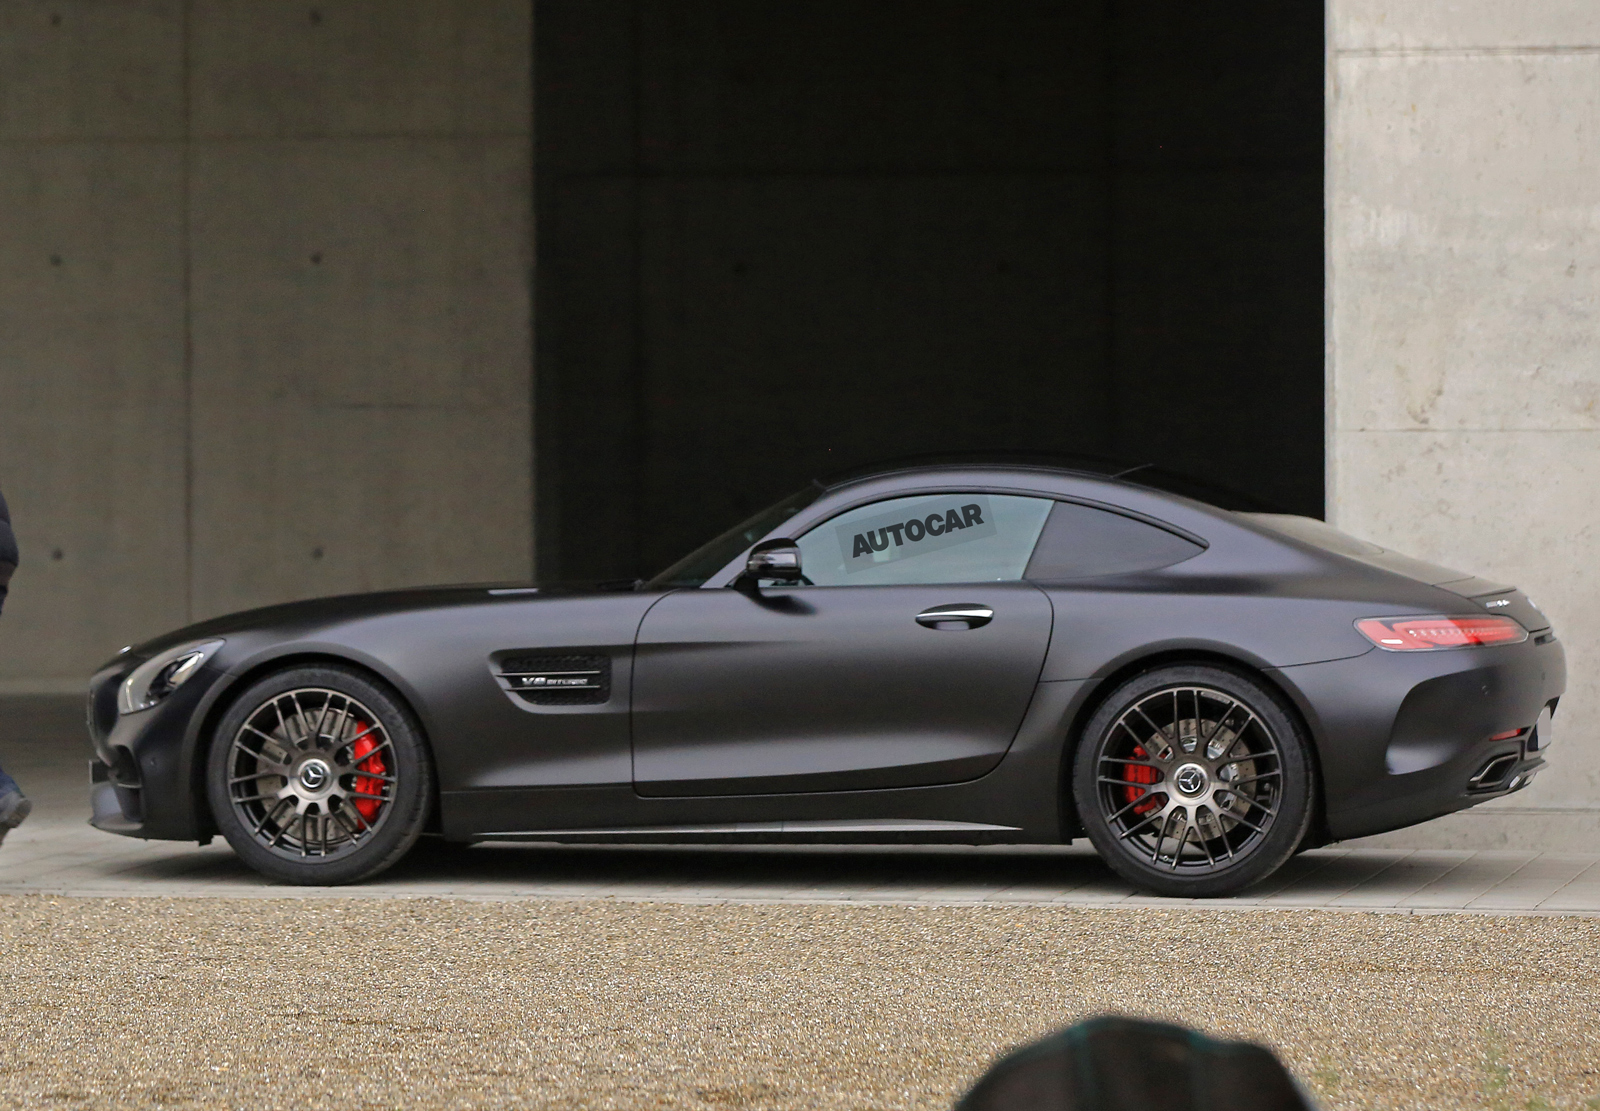 2017 mercedes amg gt c coupe to get 549bhp twin turbo v8. Black Bedroom Furniture Sets. Home Design Ideas